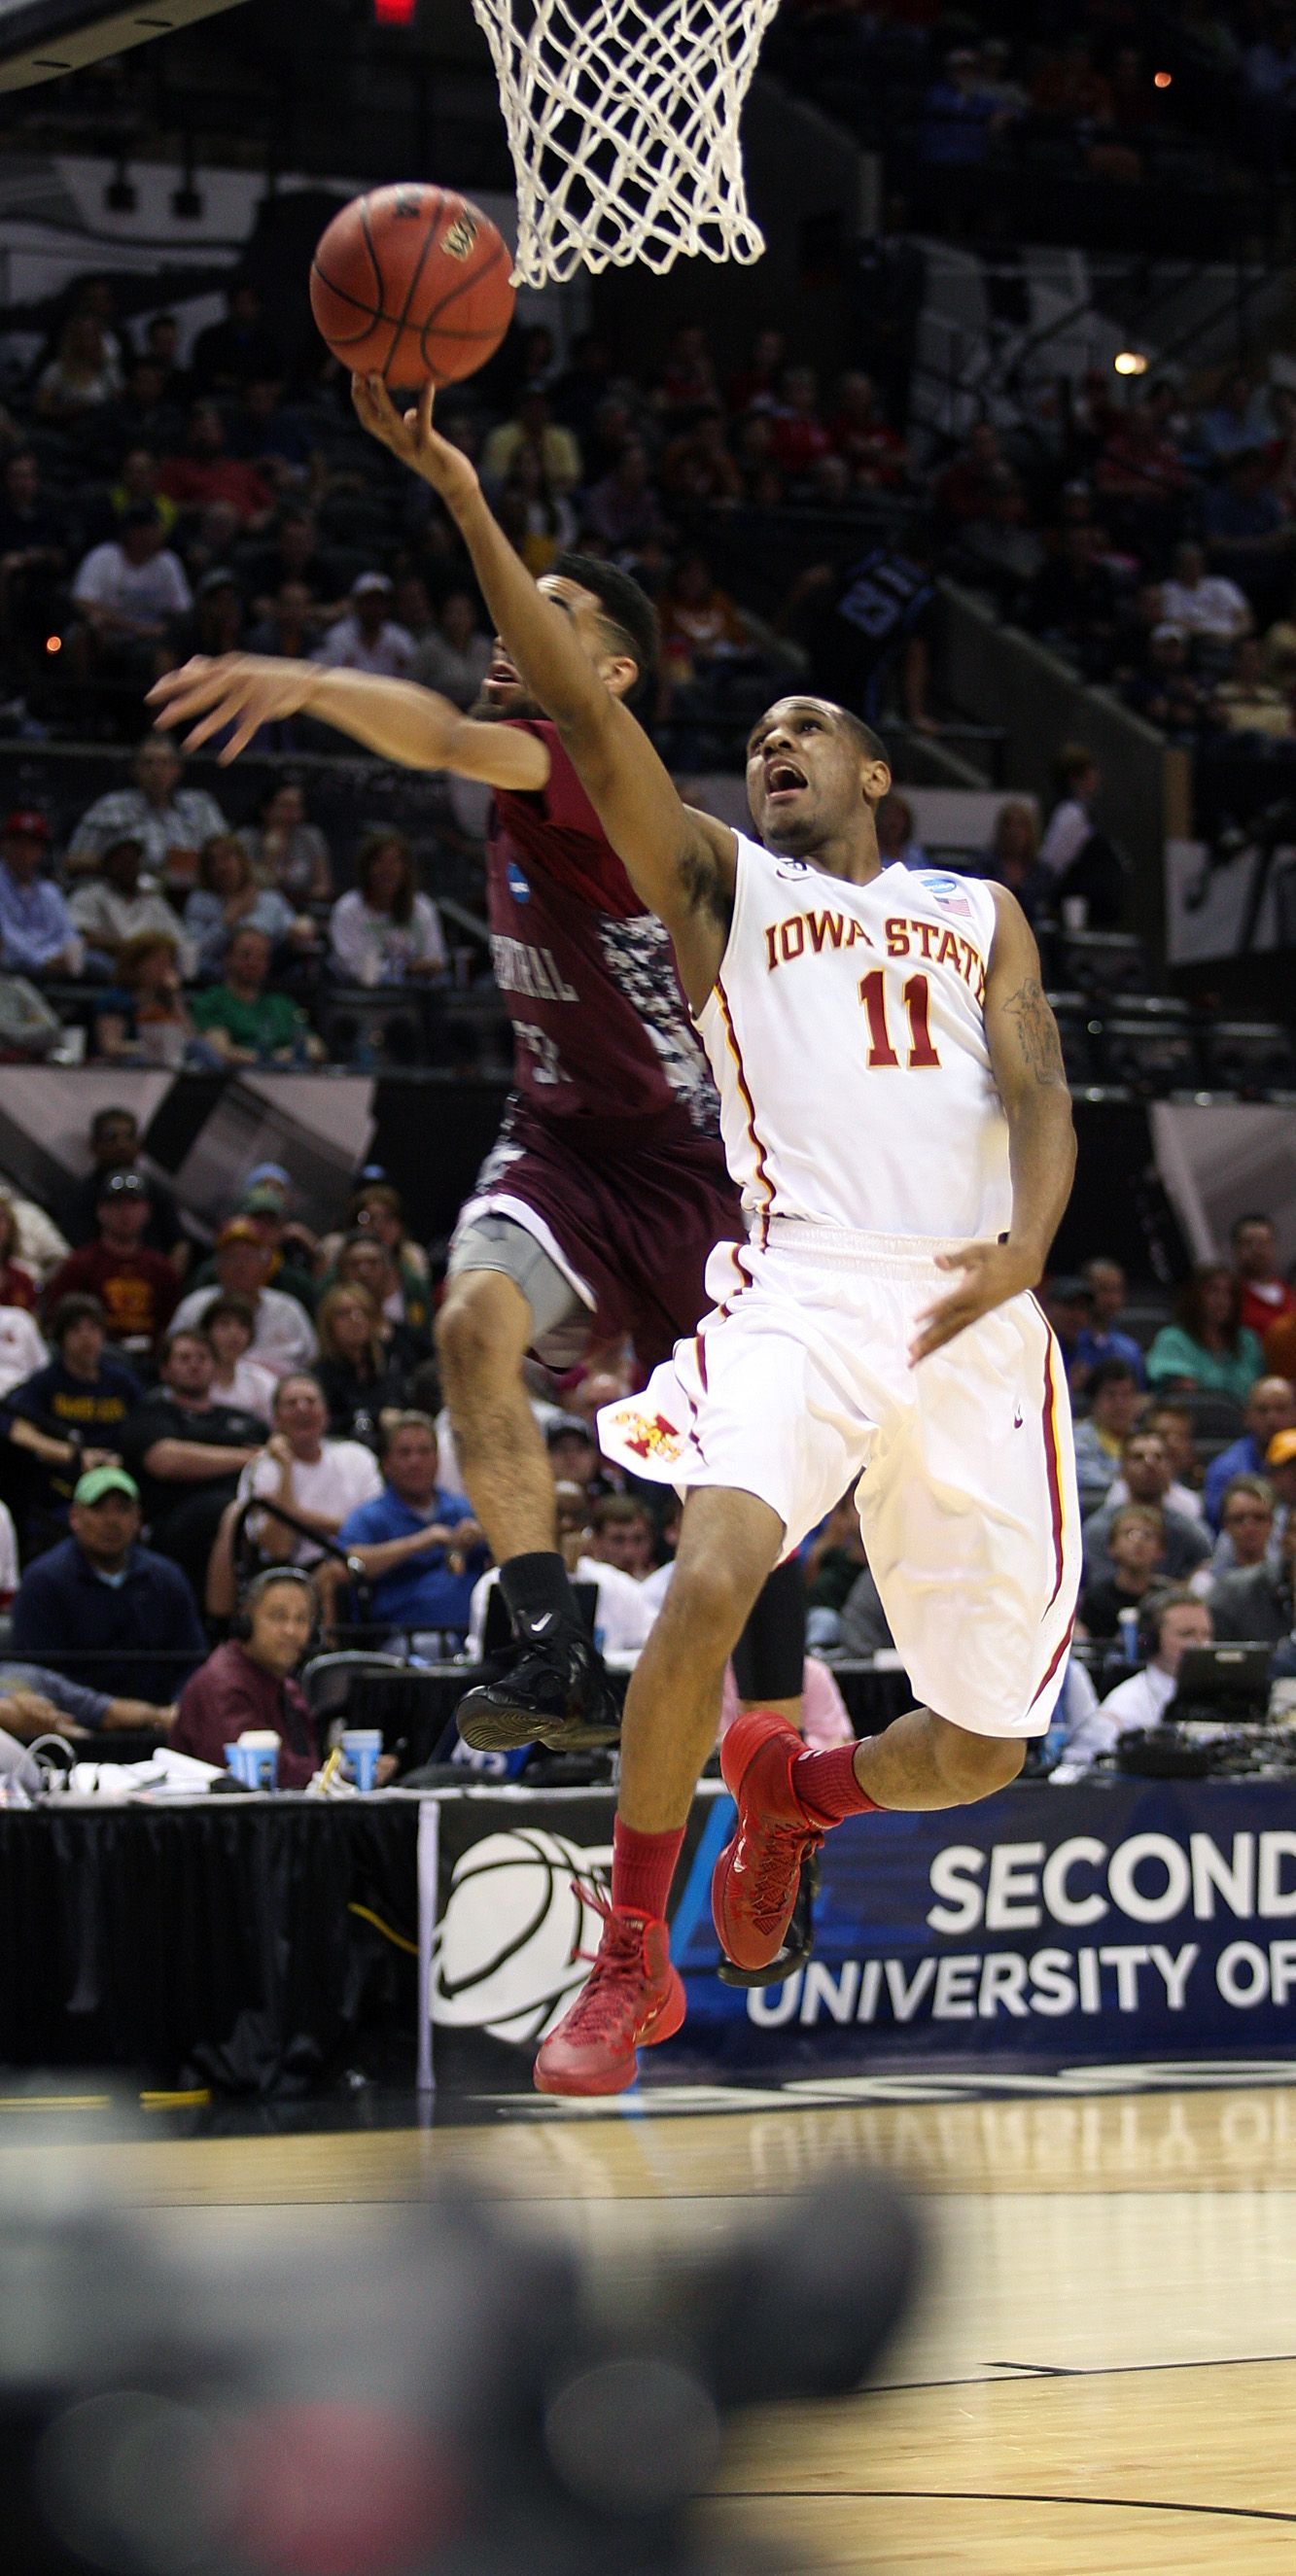 Five Iowa State Players Scored In Double Figures Including Monte